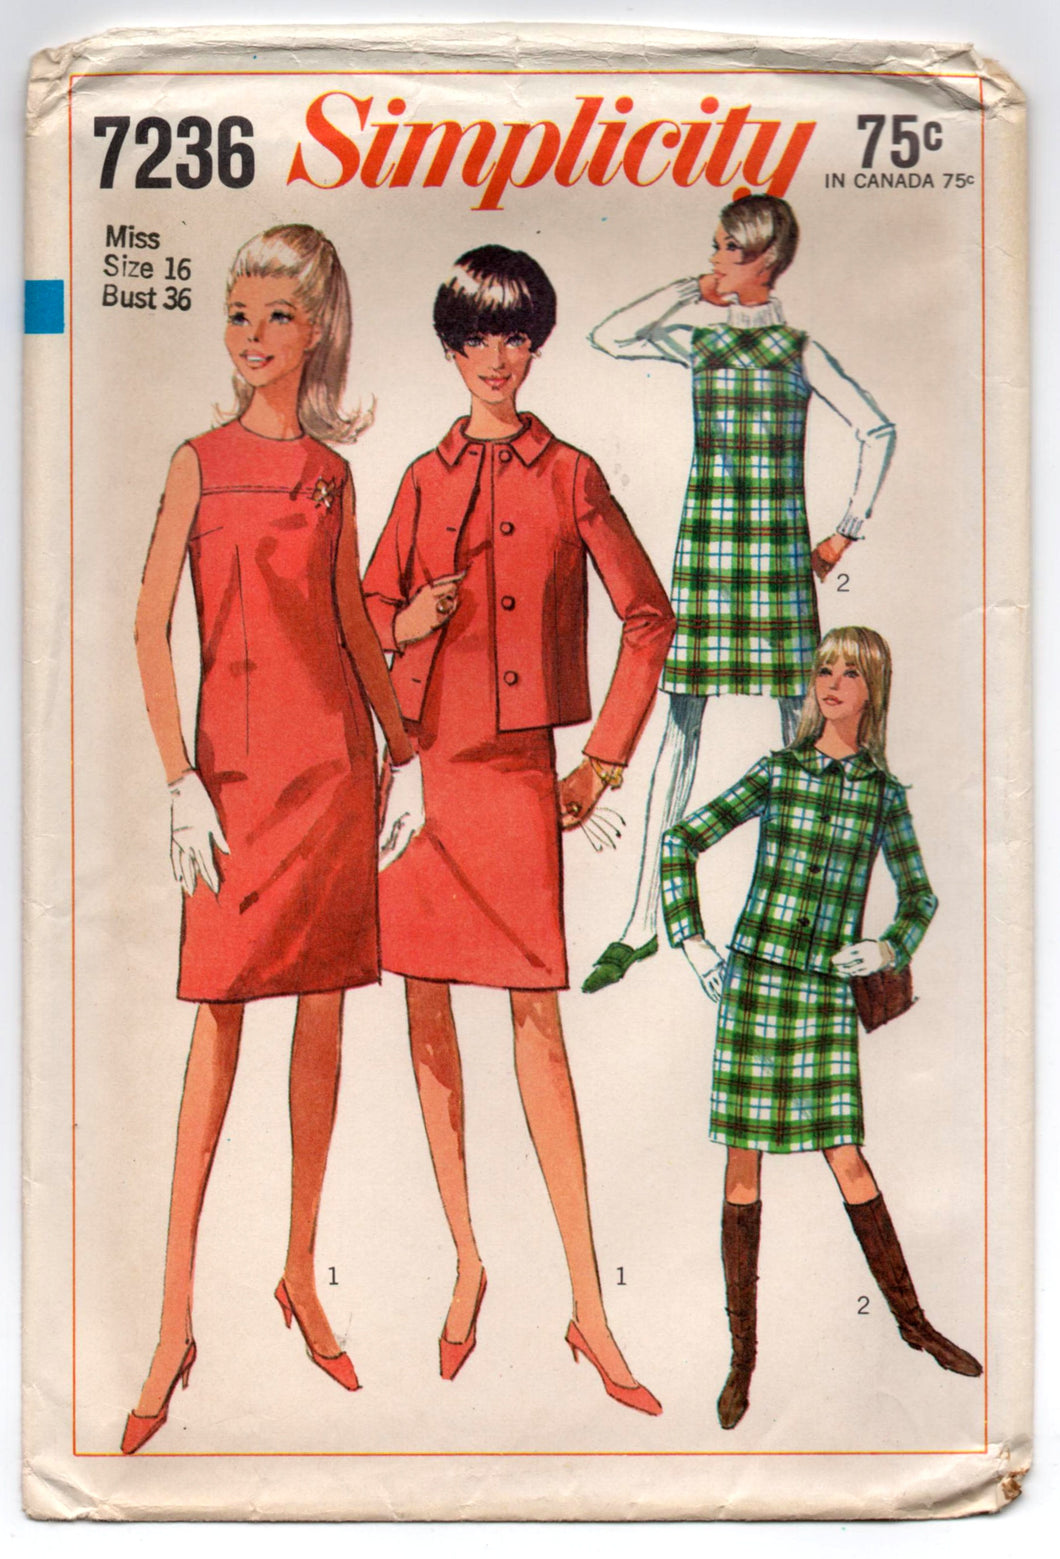 1960's Simplicity One-Piece Mod Dress, Jacket and Jumper Pattern - Bust 36